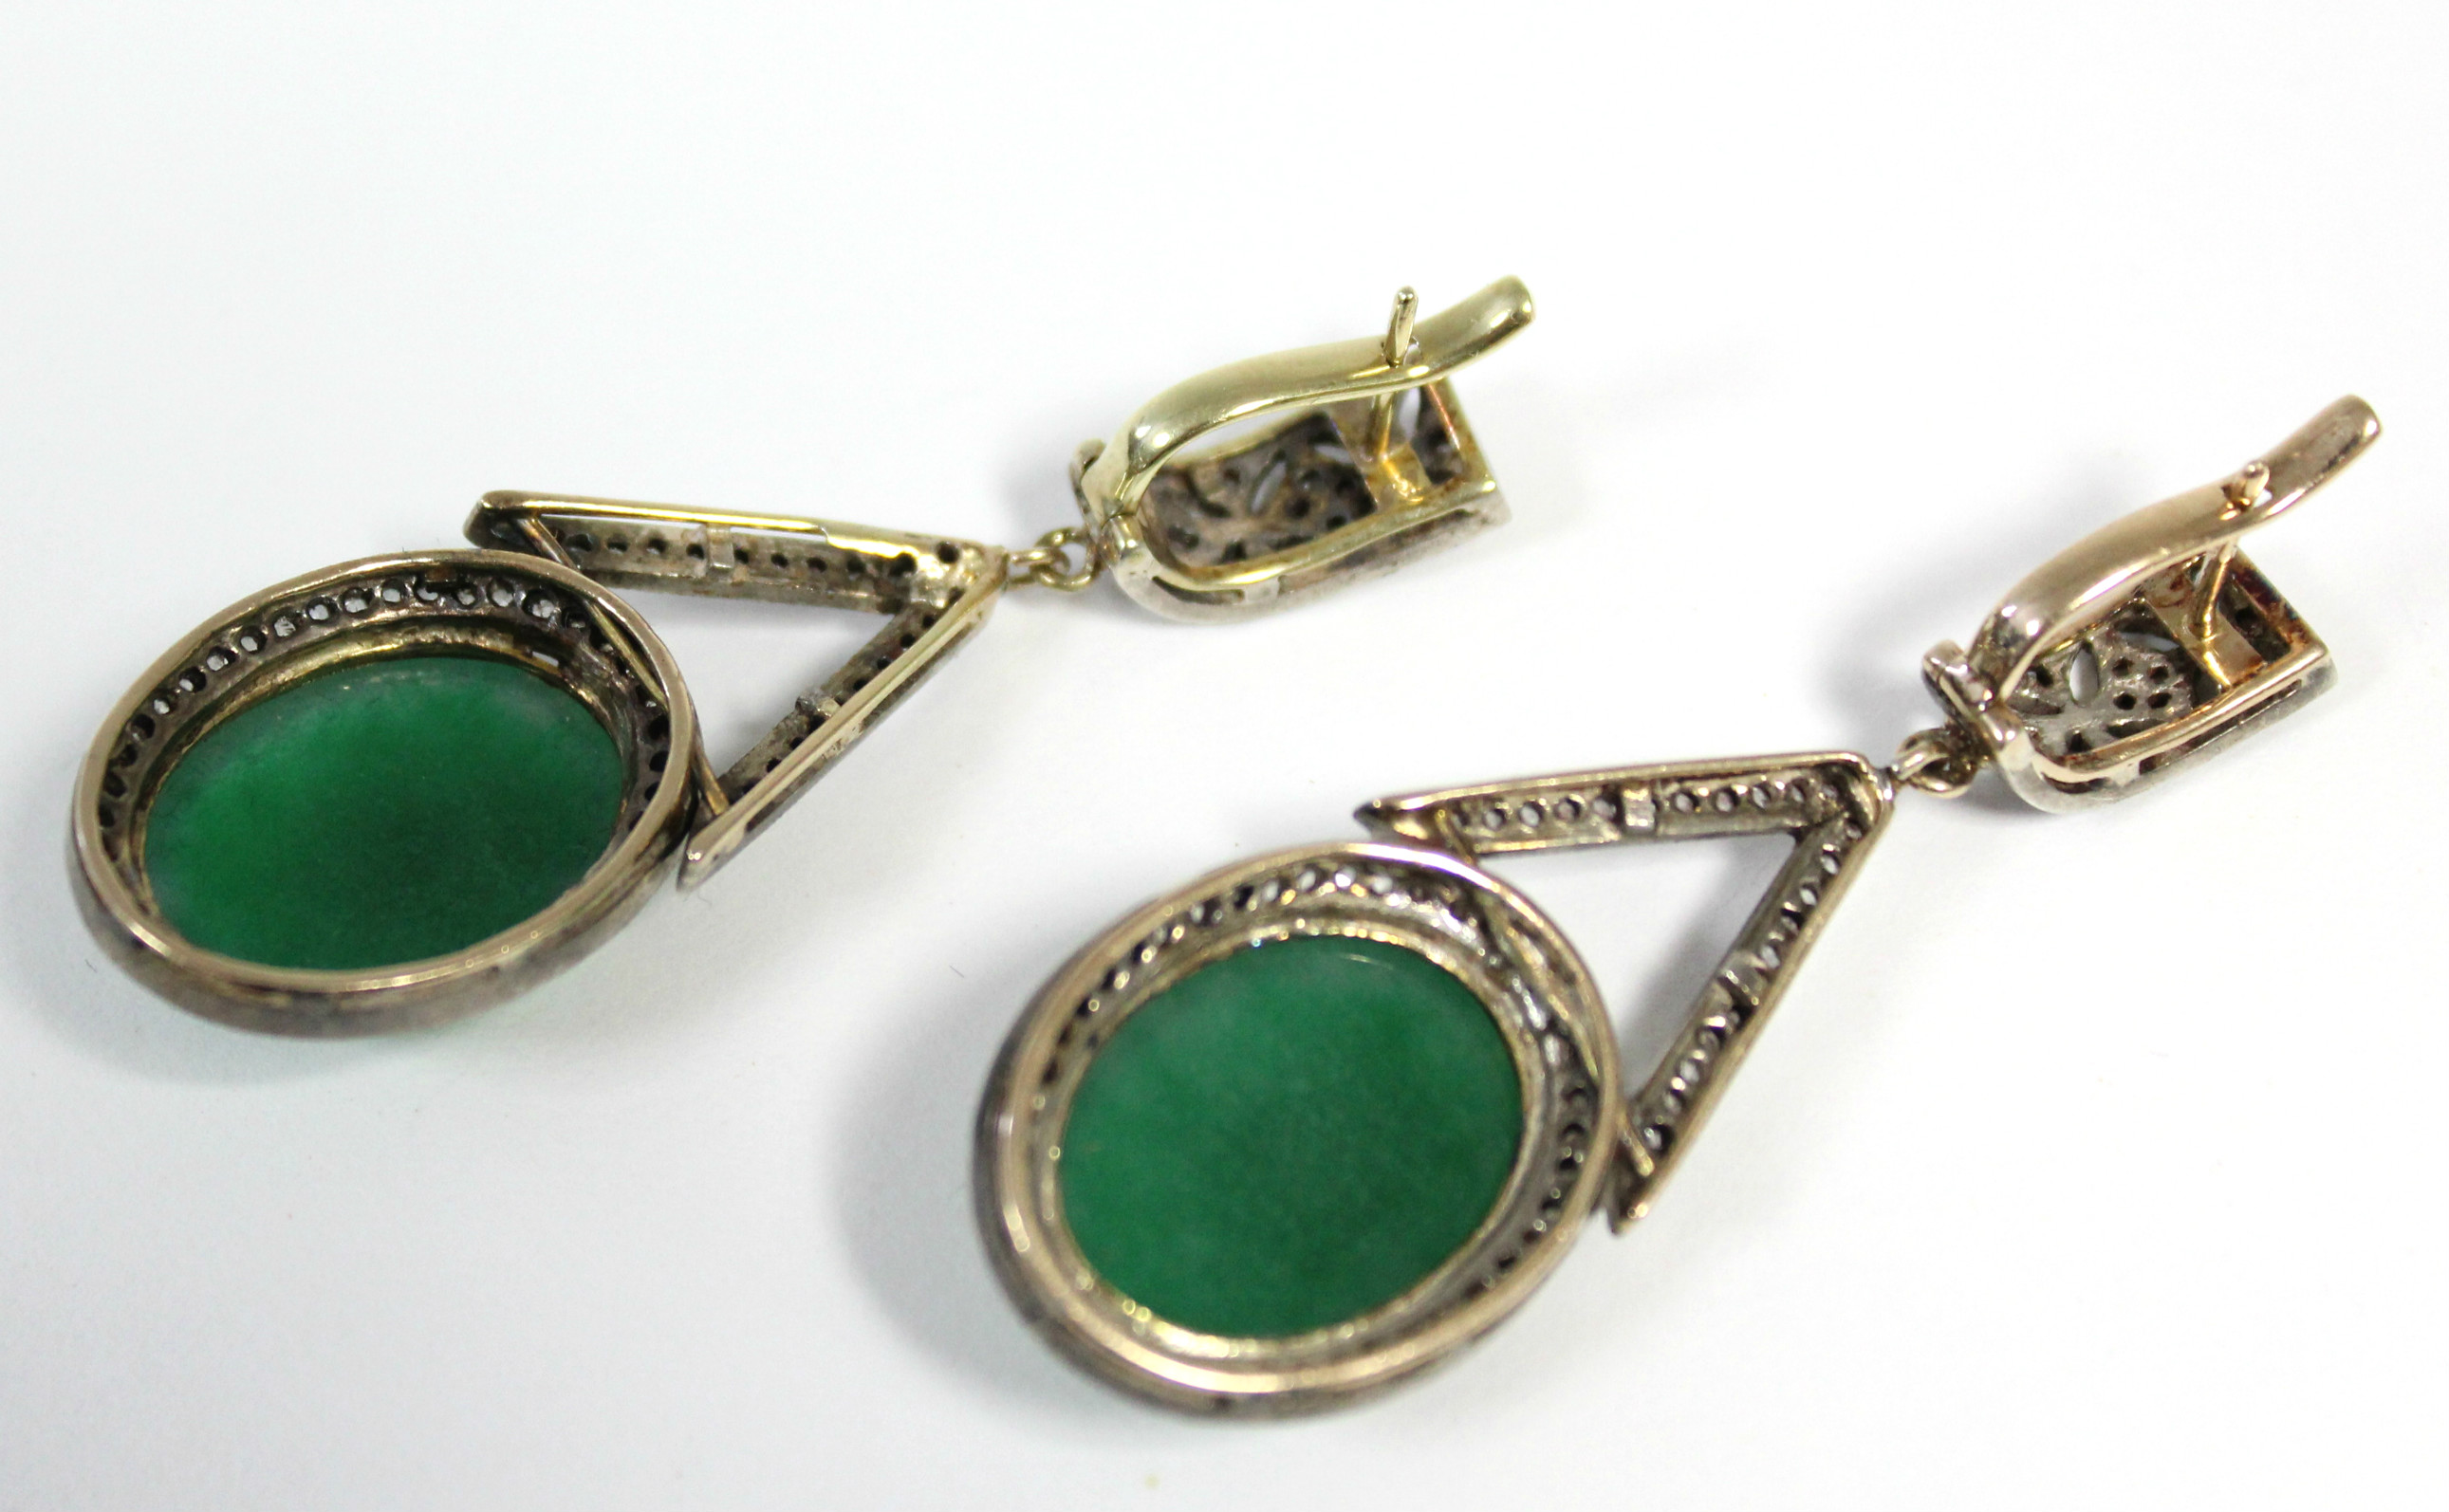 A PAIR OF JADE & DIAMOND PENDANT EARRINGS, each with oval green jade cabochon suspended from an - Image 6 of 6